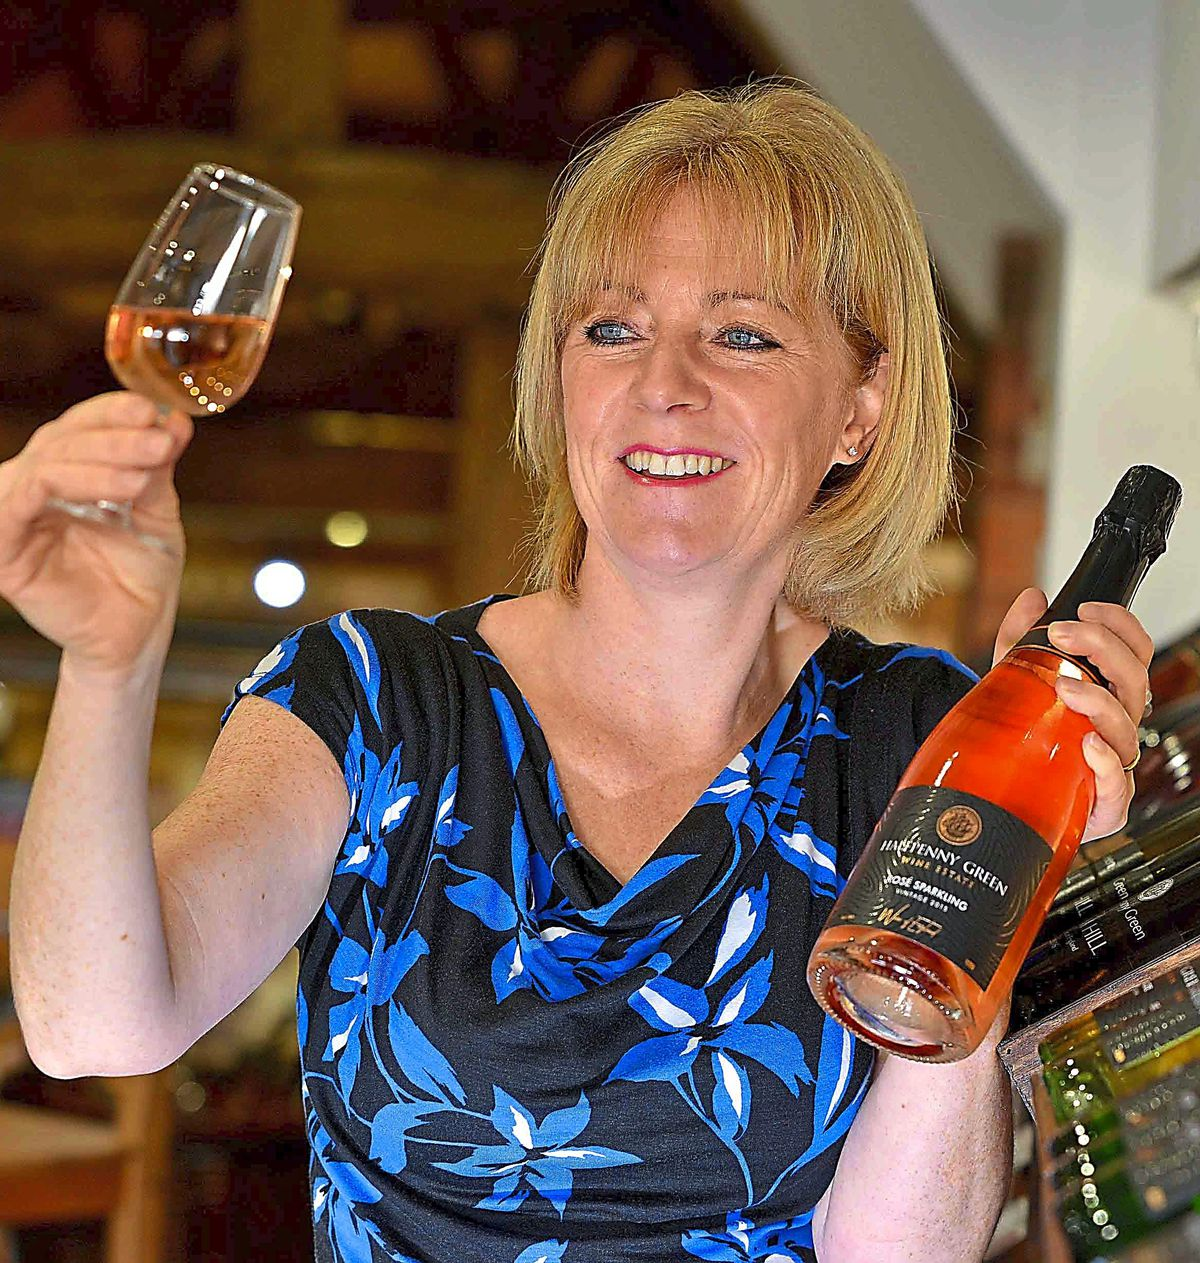 Wine time – Clive's wife Lisa samples a rosé